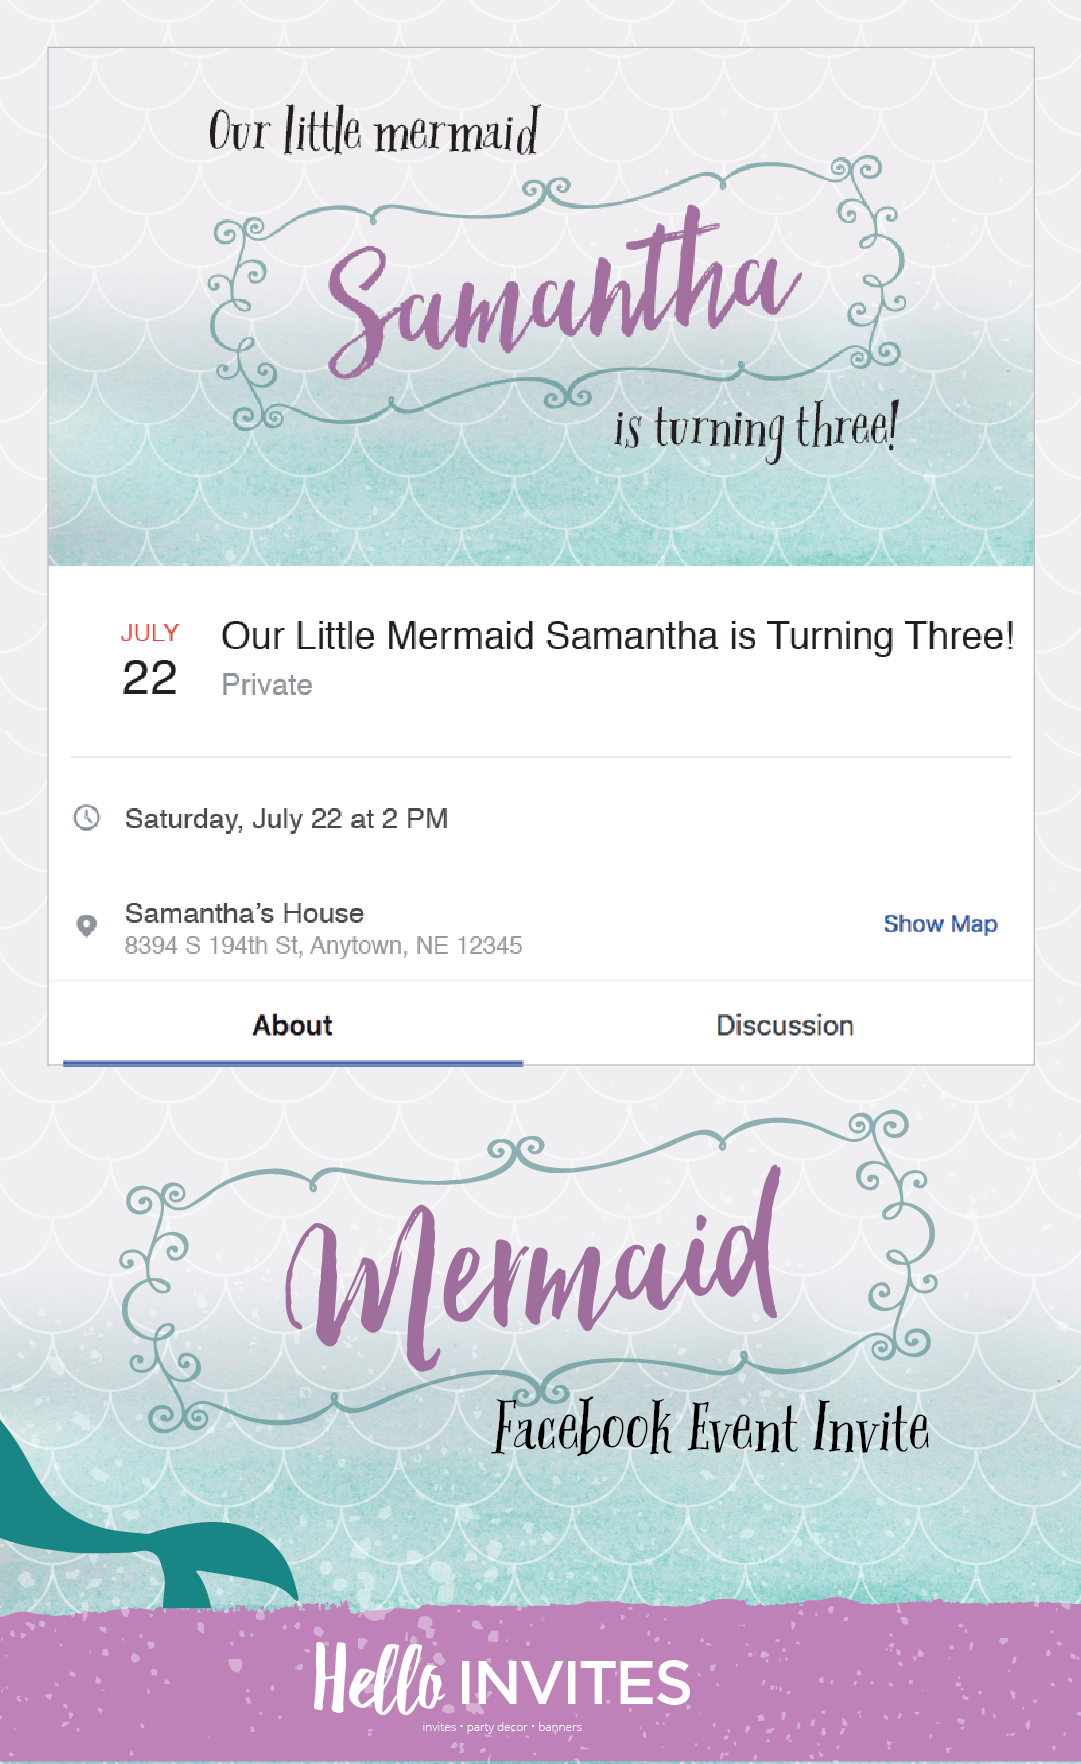 mermaid birthday facebook event